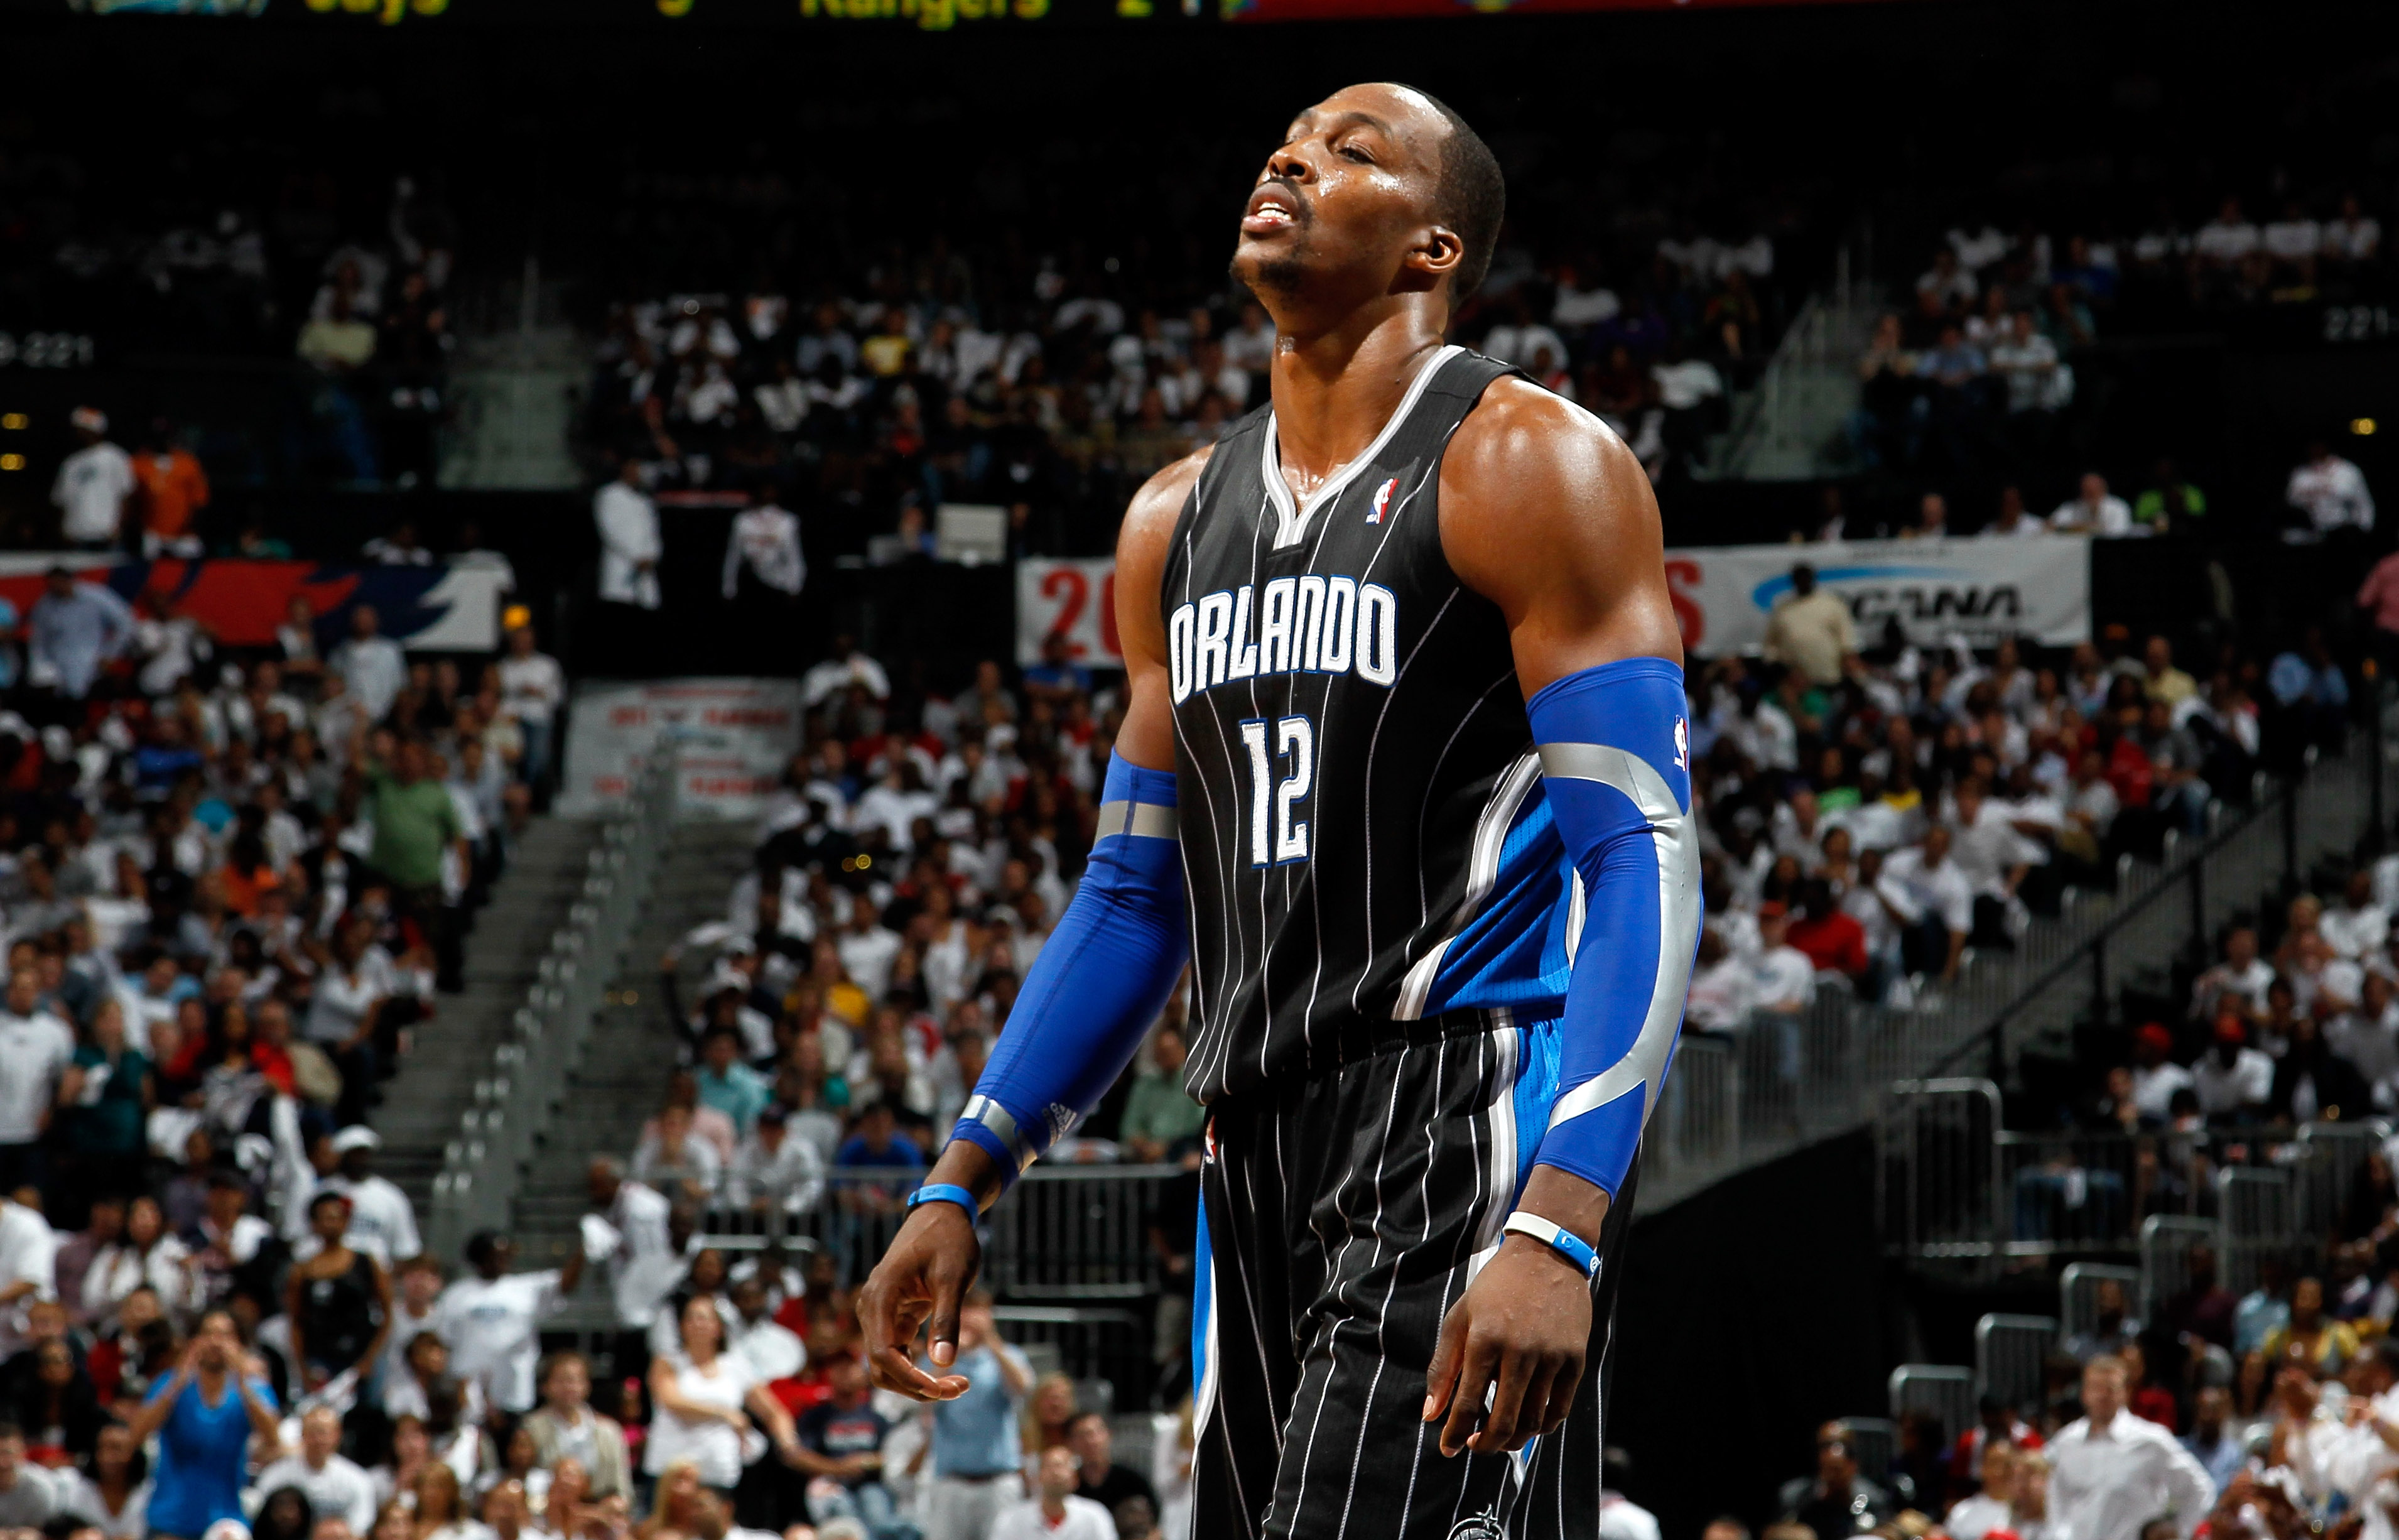 ATLANTA, GA - APRIL 28:  Dwight Howard #12 of the Orlando Magic walks to the bench after a turnover to the Atlanta Hawks during Game Six of the Eastern Conference Quarterfinals in the 2011 NBA Playoffs at Philips Arena on April 28, 2011 in Atlanta, Georgi